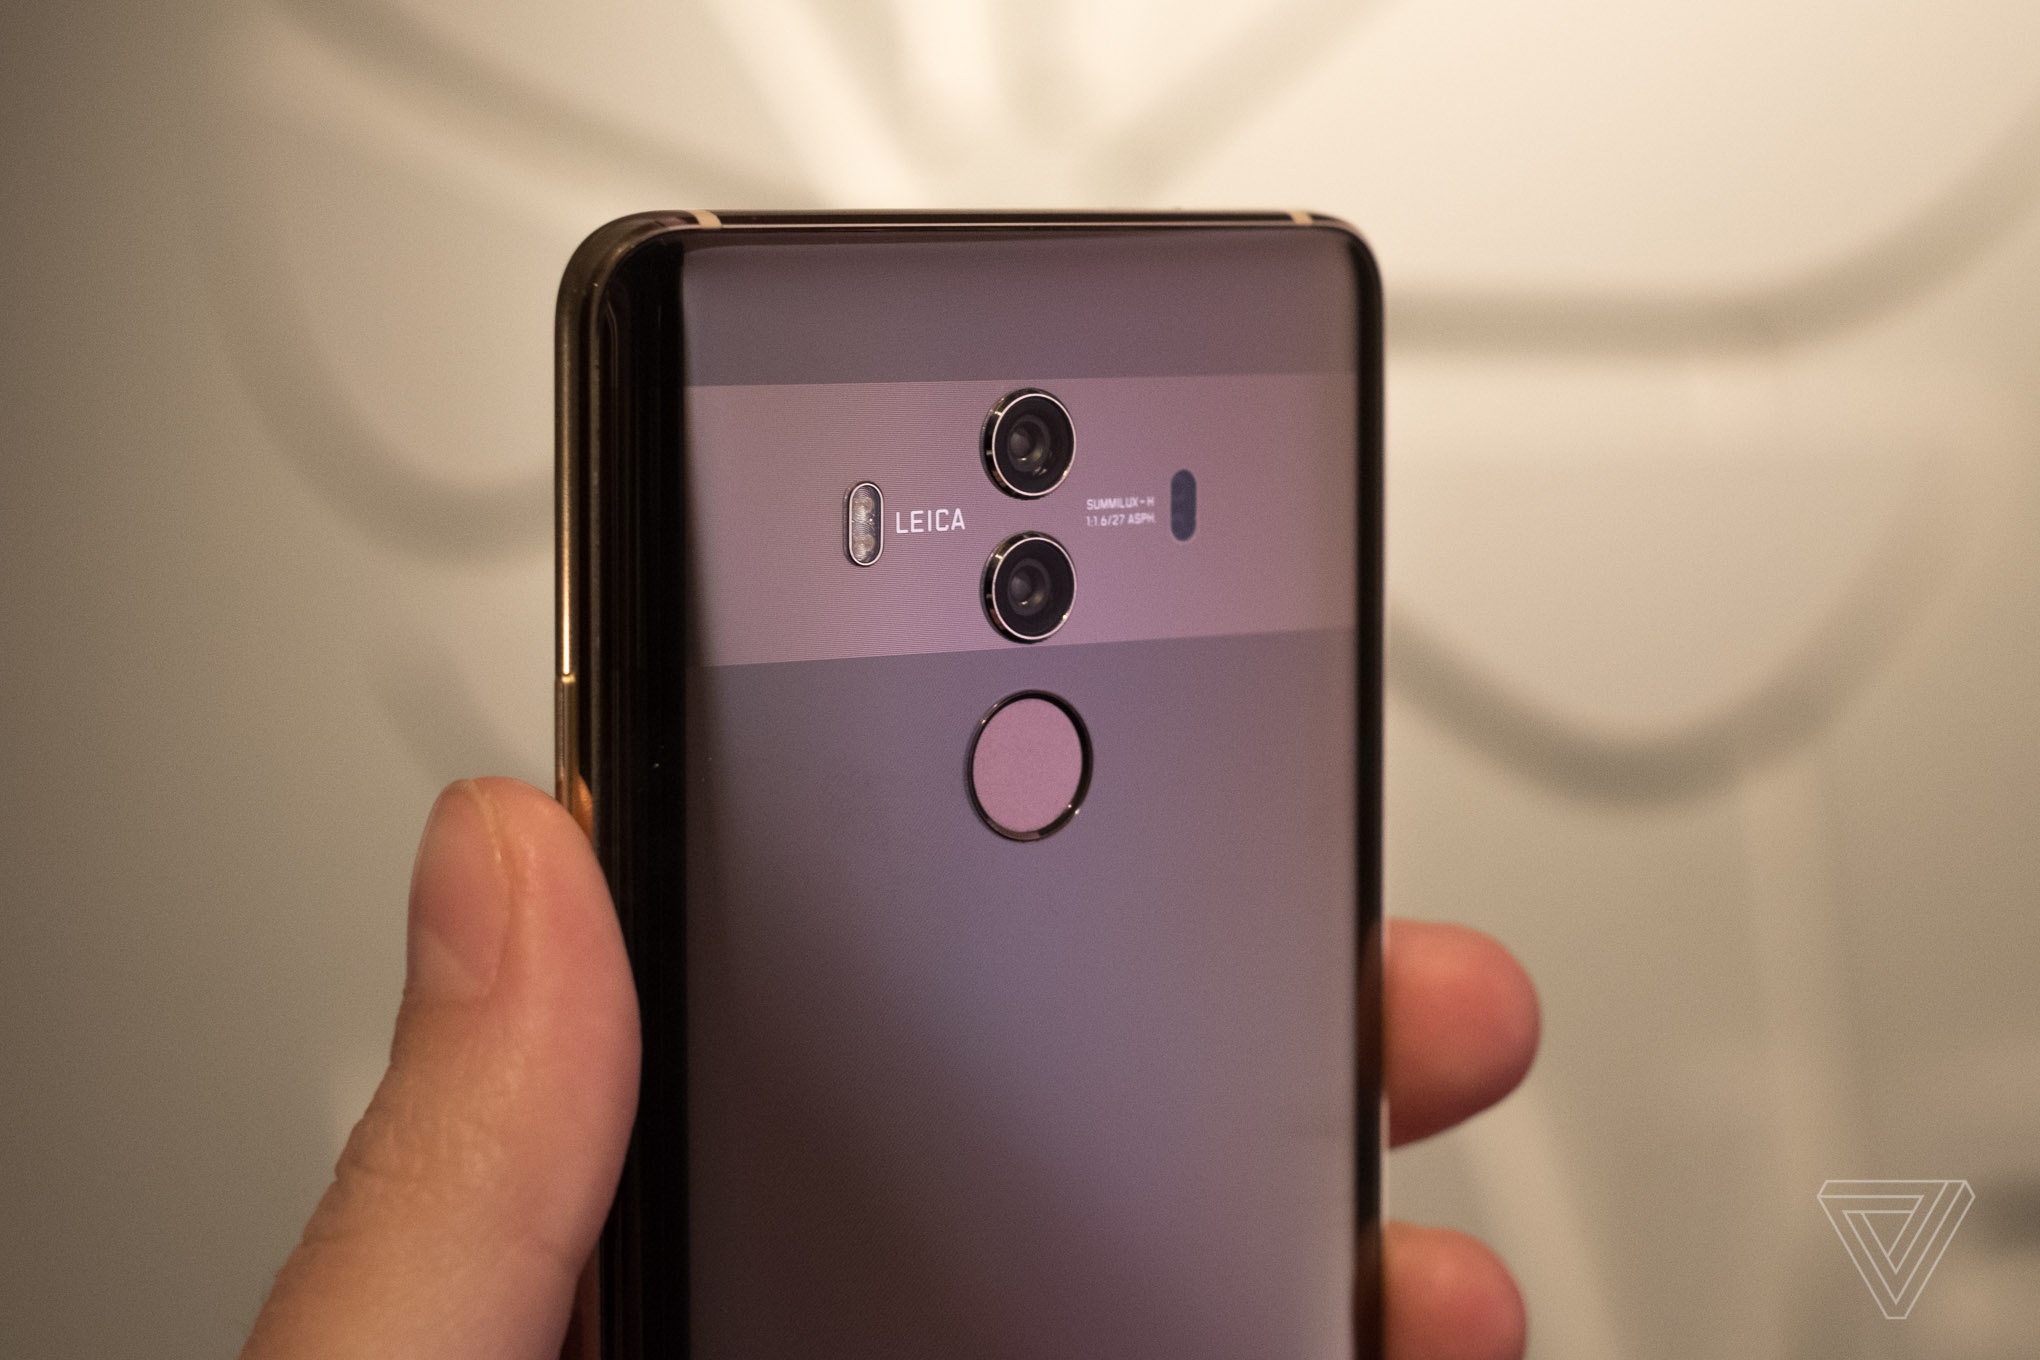 Android Oreo coming to Huawei Mate 9 and P10 with new features